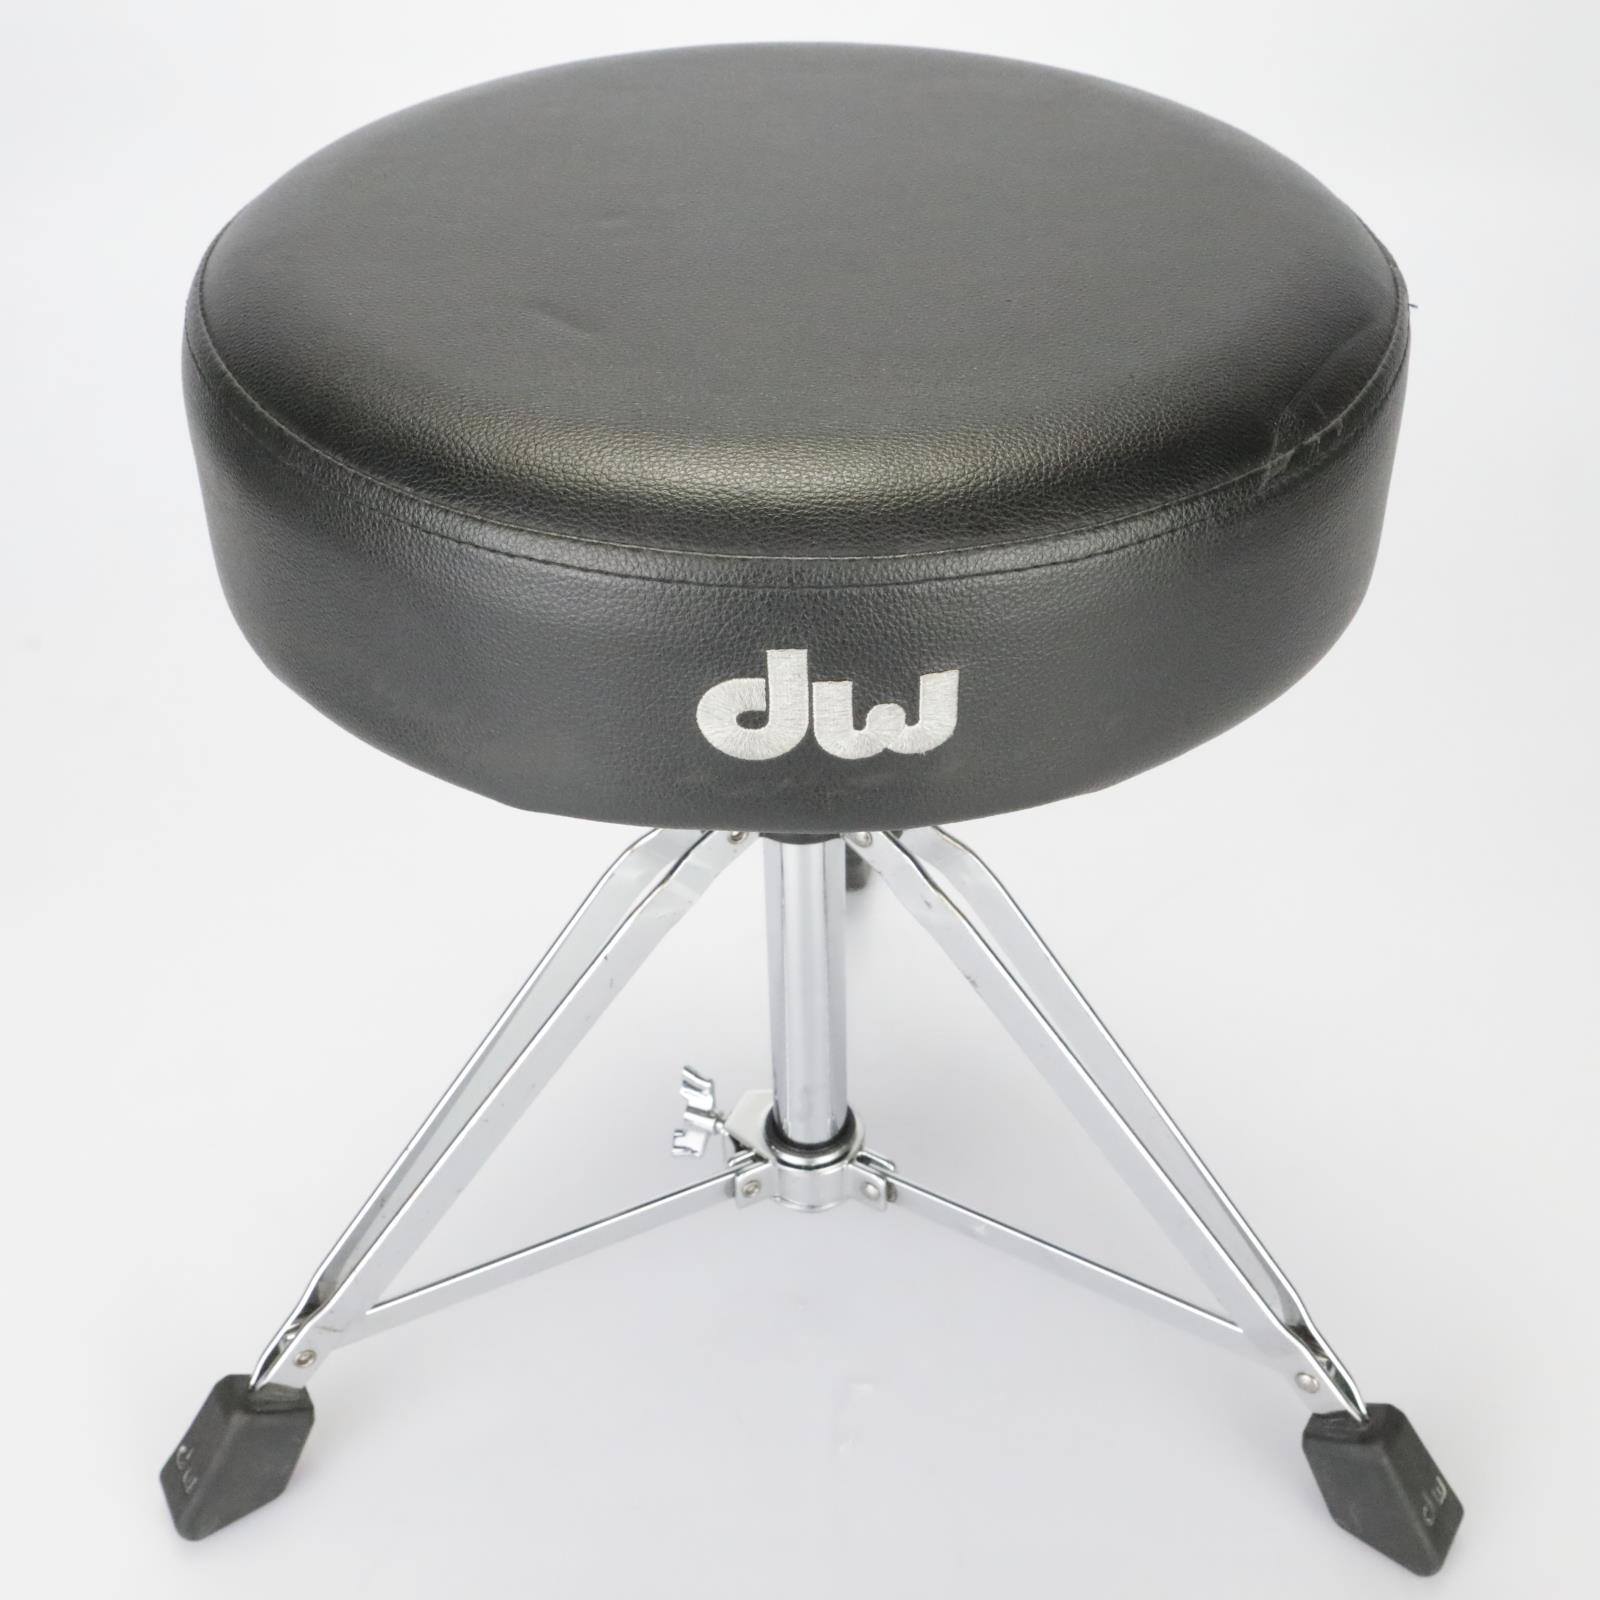 Drum Workshop DW 9100M Double-Braced Throne Seat Stool Boys Like Girls #39423